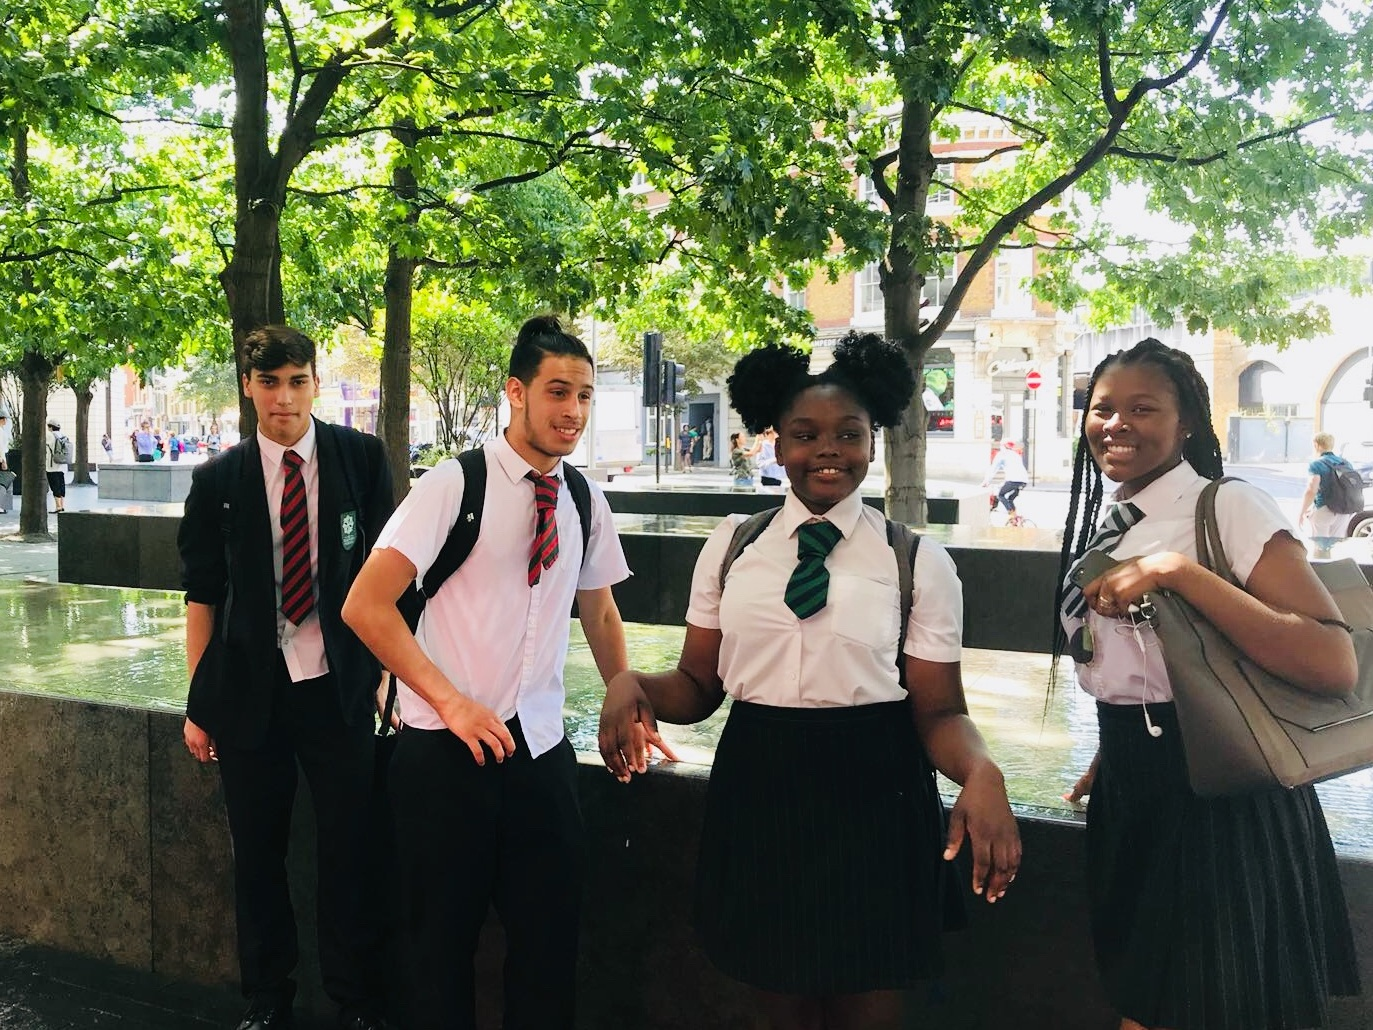 Year 9 students from The Elmgreen School in Tulse Hill at London Bridge on an orienteering challenge day.